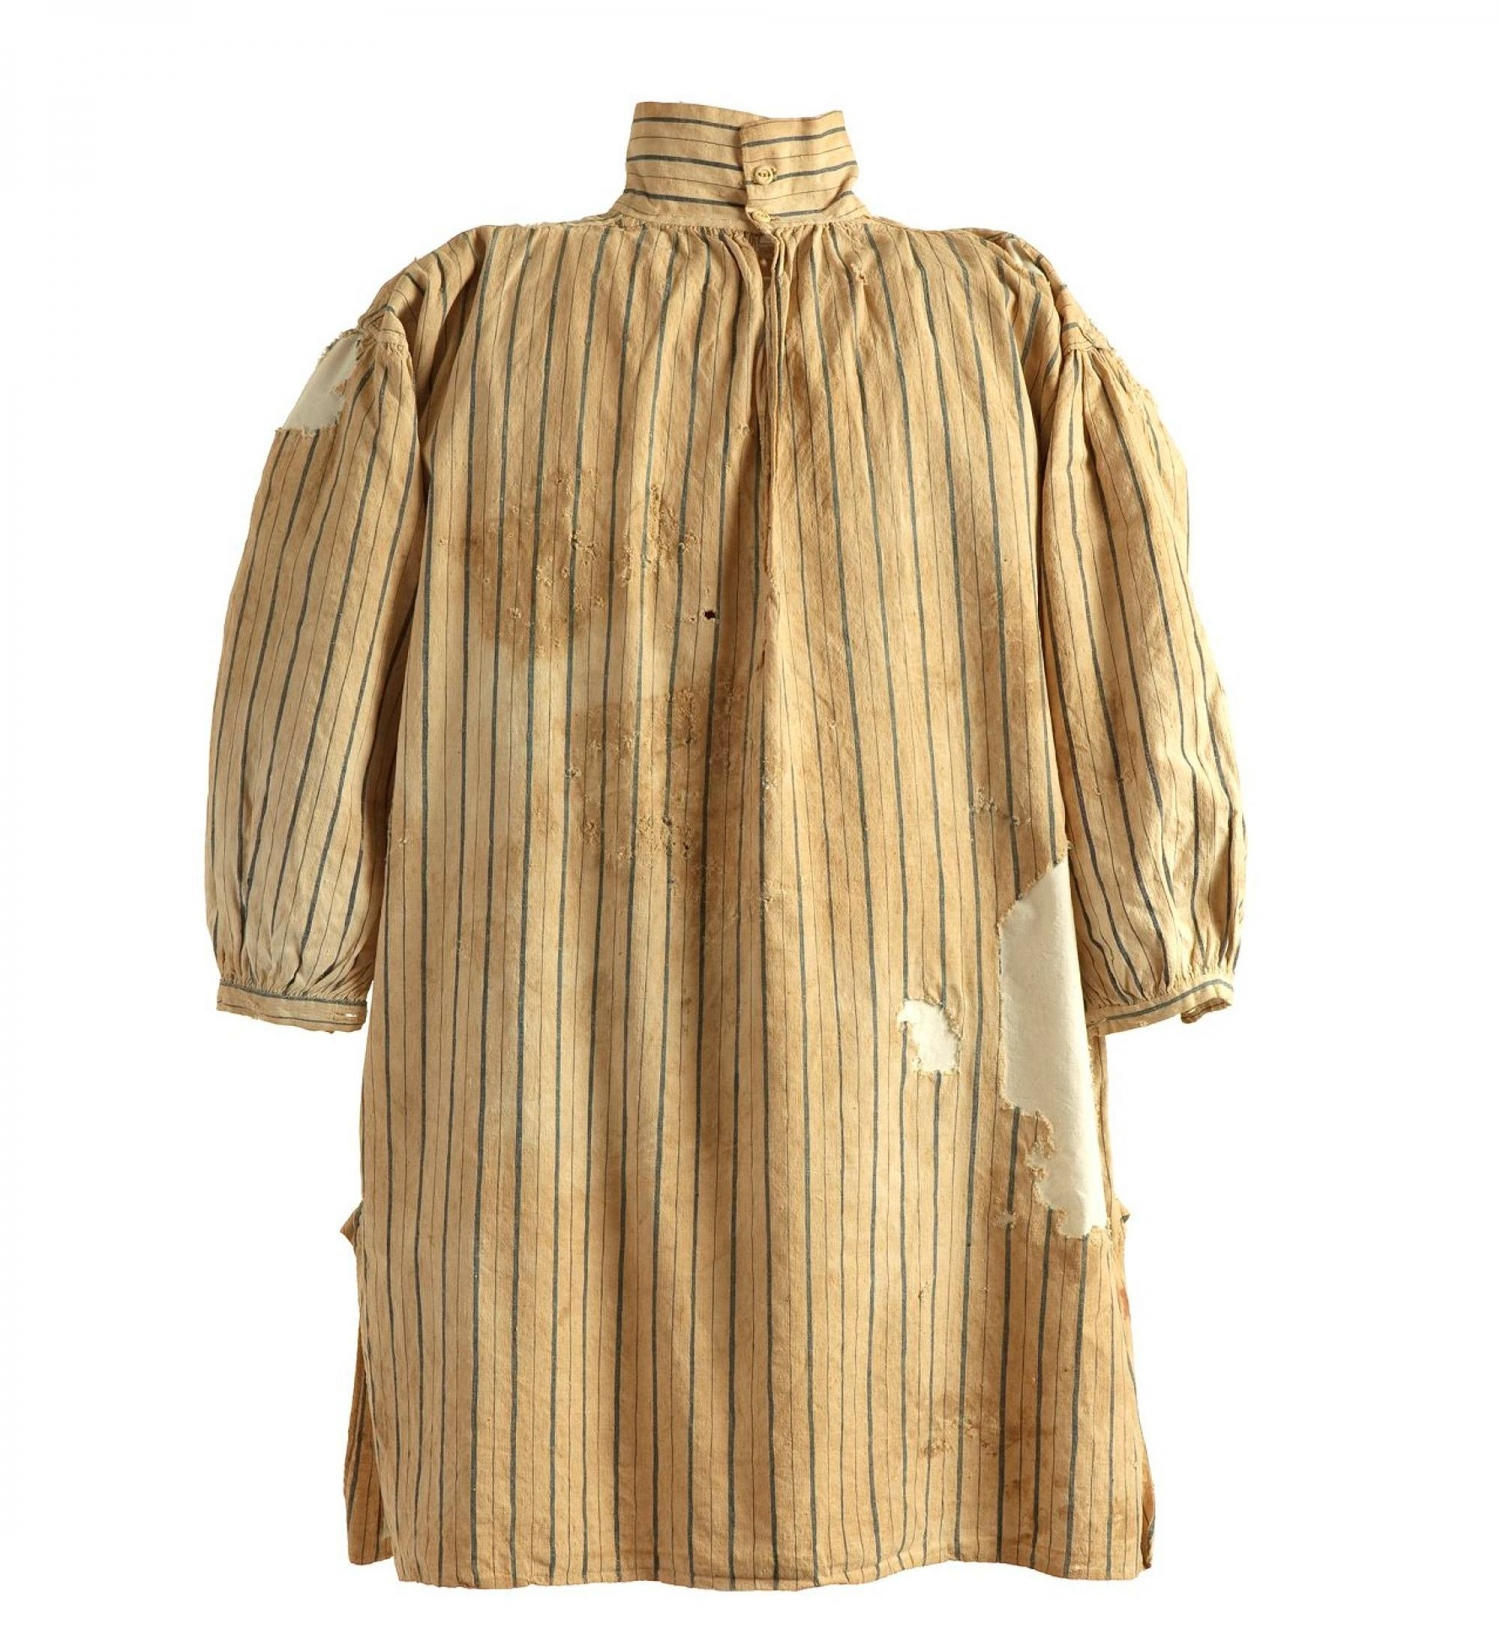 Old and faded blue and white striped cotton shirt